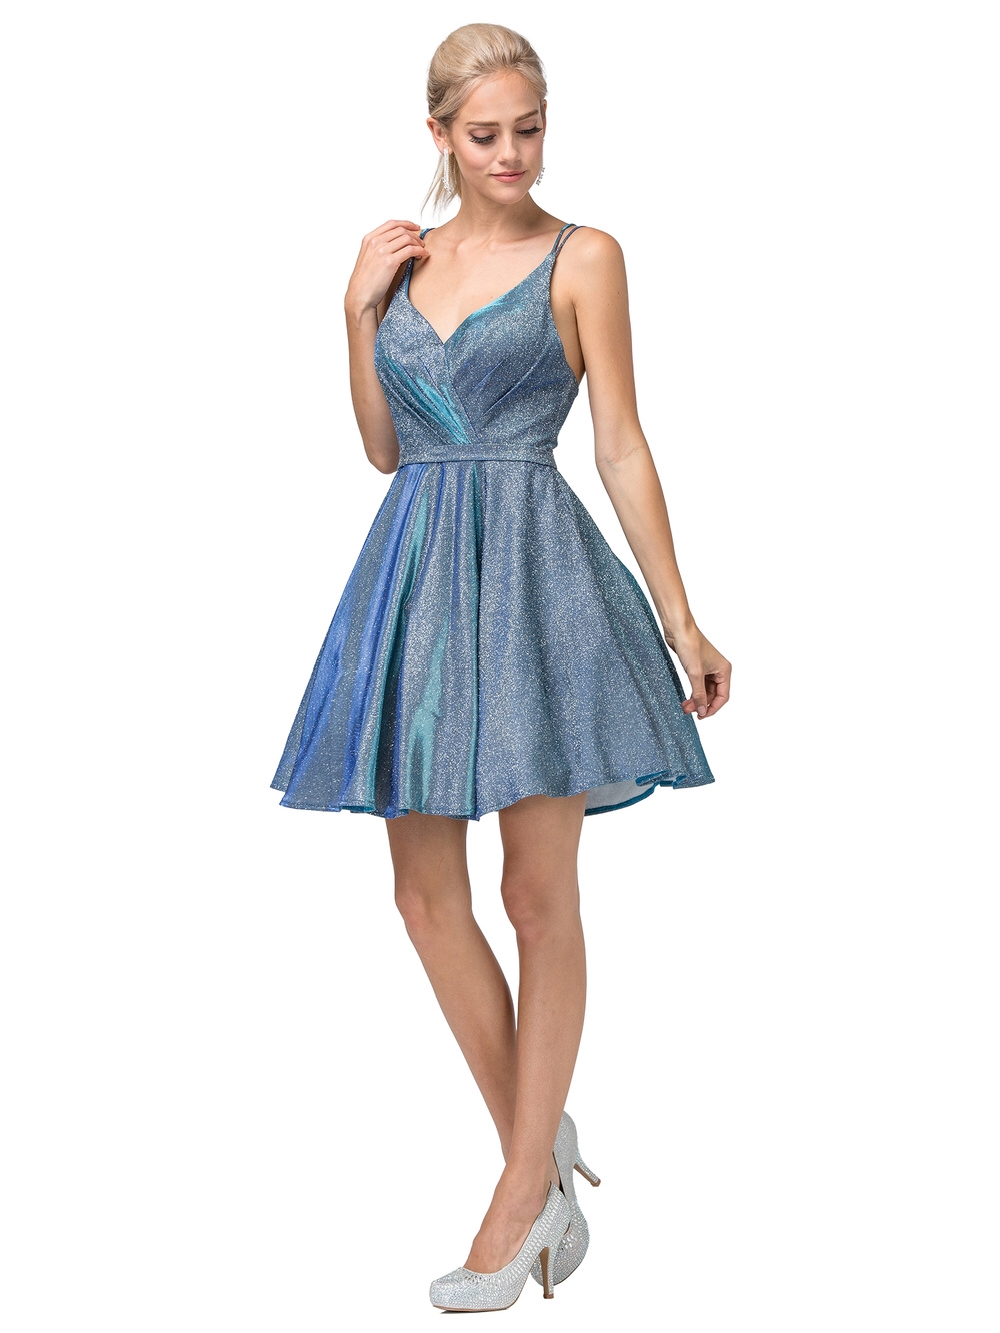 Dancing Queen DQ 3183 - Glitter Metallic Spaghetti Strap Homecoming Dress - Diggz Prom